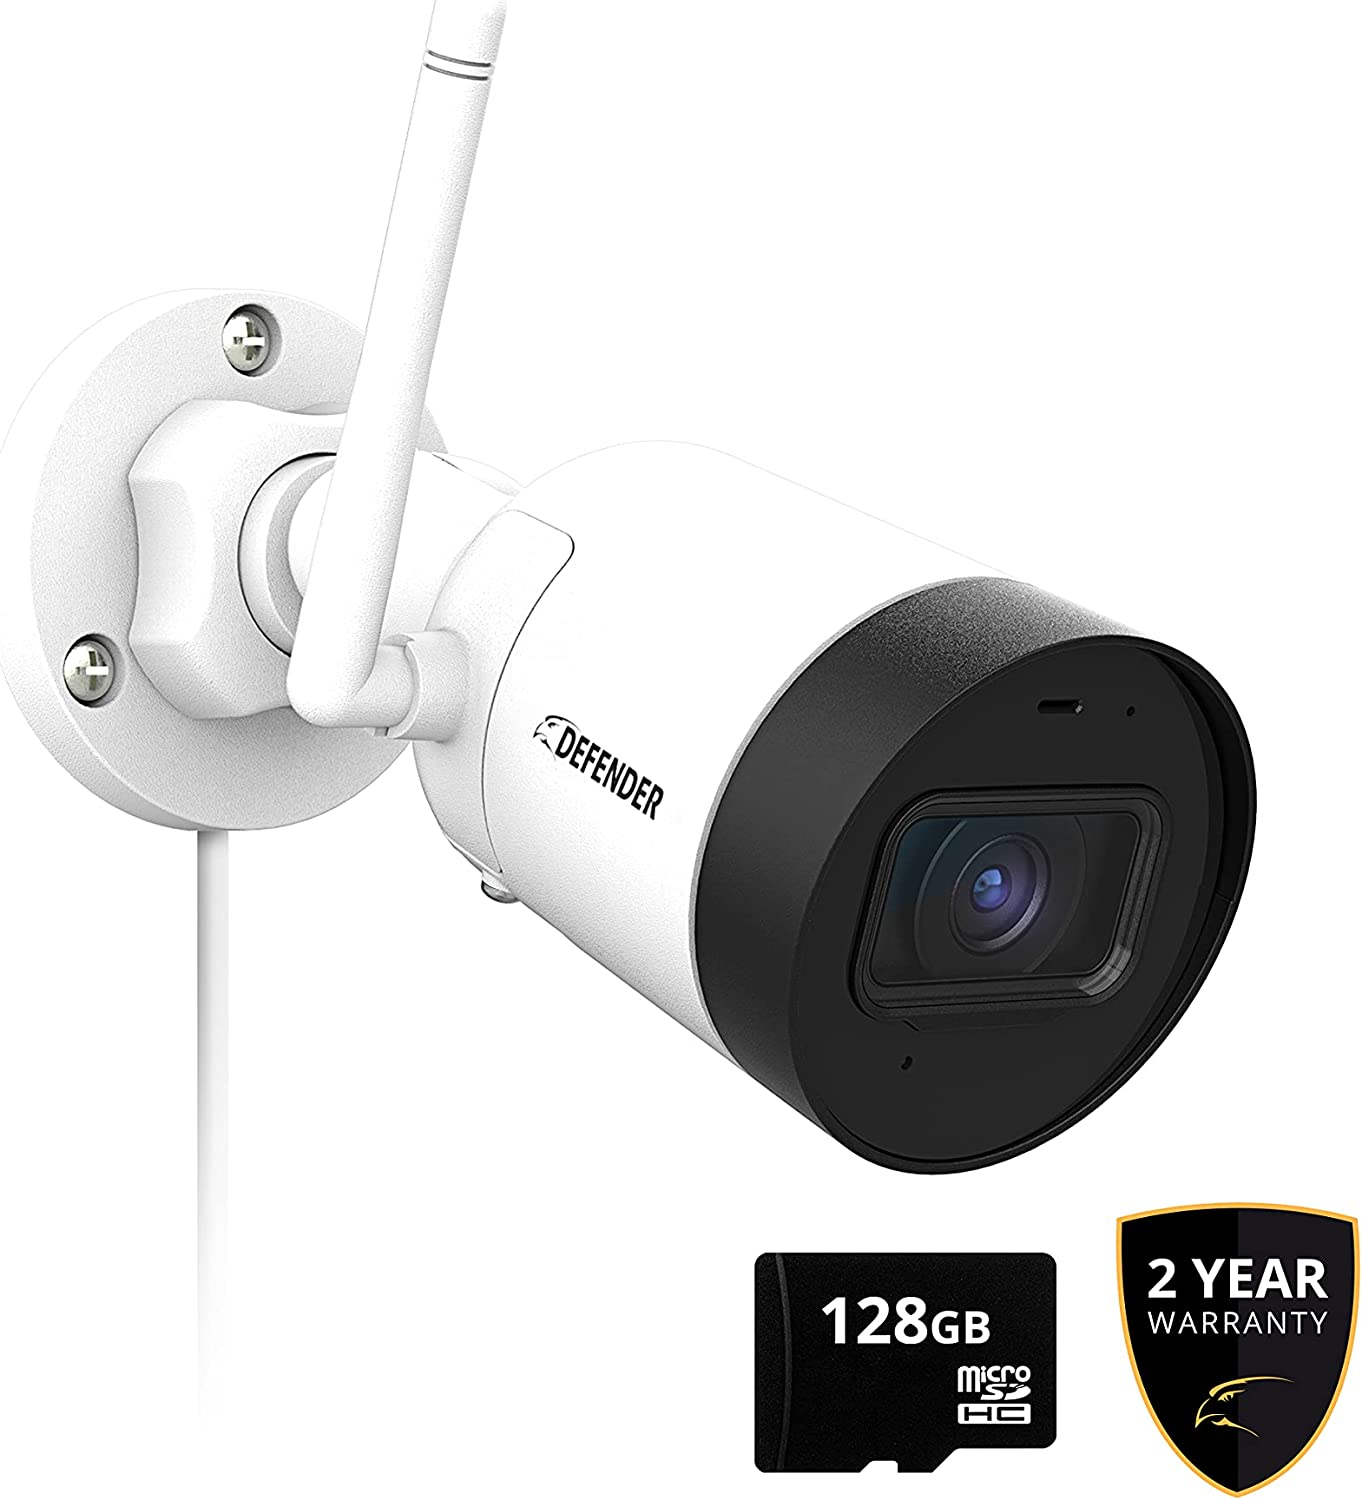 Defender Guard HD Wi-Fi Security Camera - Indoor and Outdoor Wireless IP WiFi Camera 2k (4MP) Resolution with Audio Recording - No Monthly Fees, SD Card Recording - (1 Camera +Amazon Exclusive Offer)